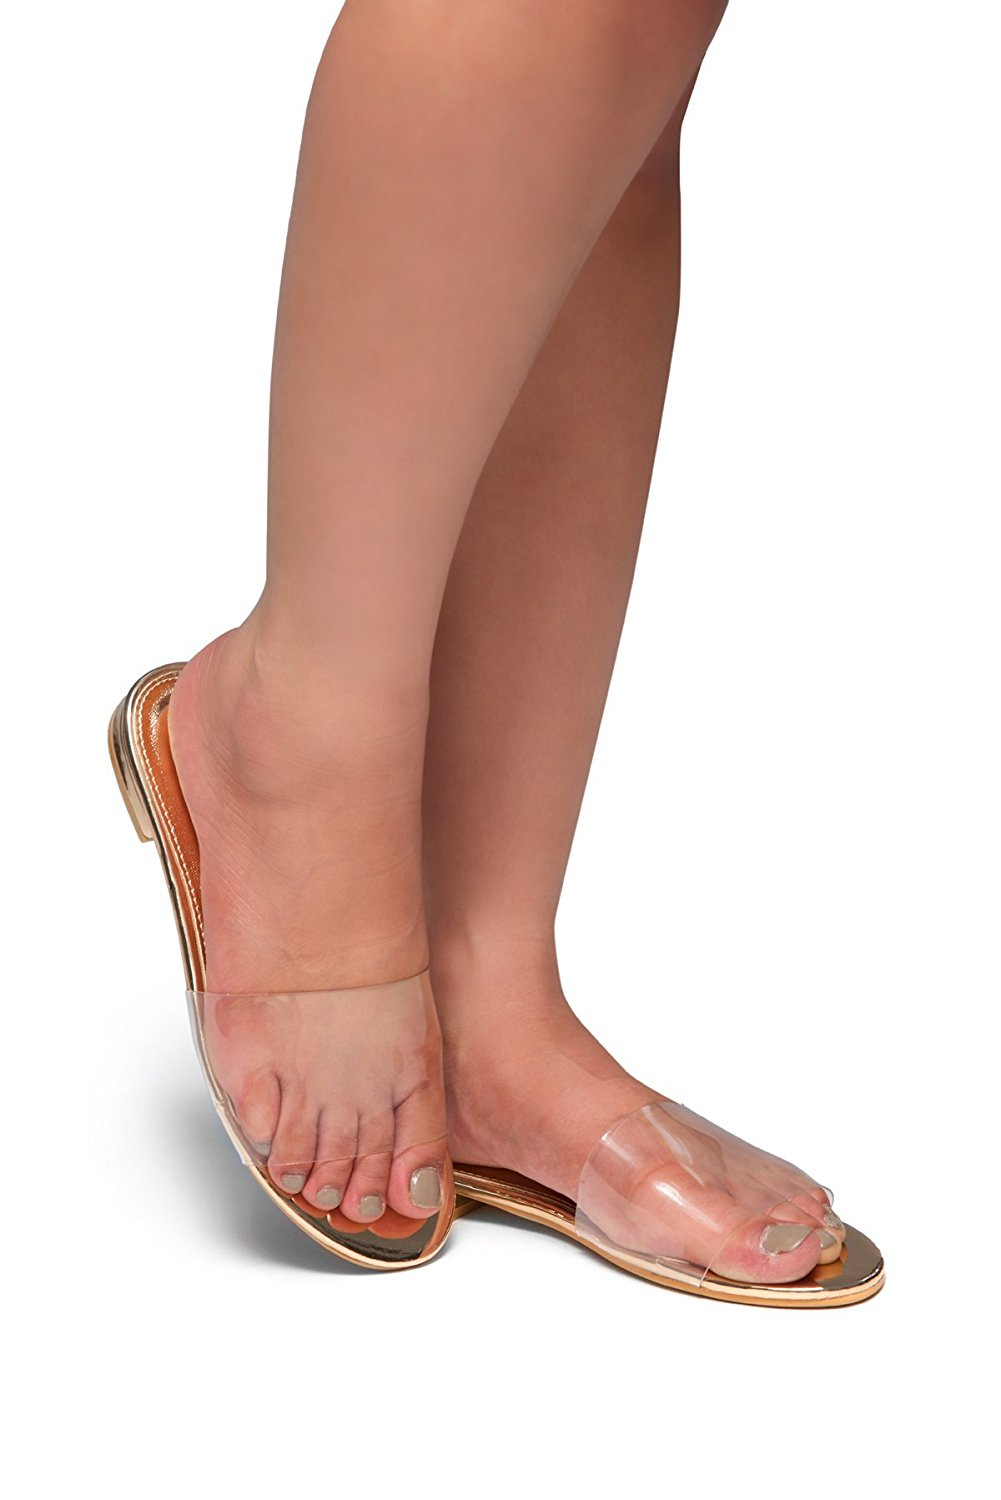 9e3909490 Get Quotations · Herstyle Women's SL-SERENNA- Transparent band, open toe,  slip-on flat